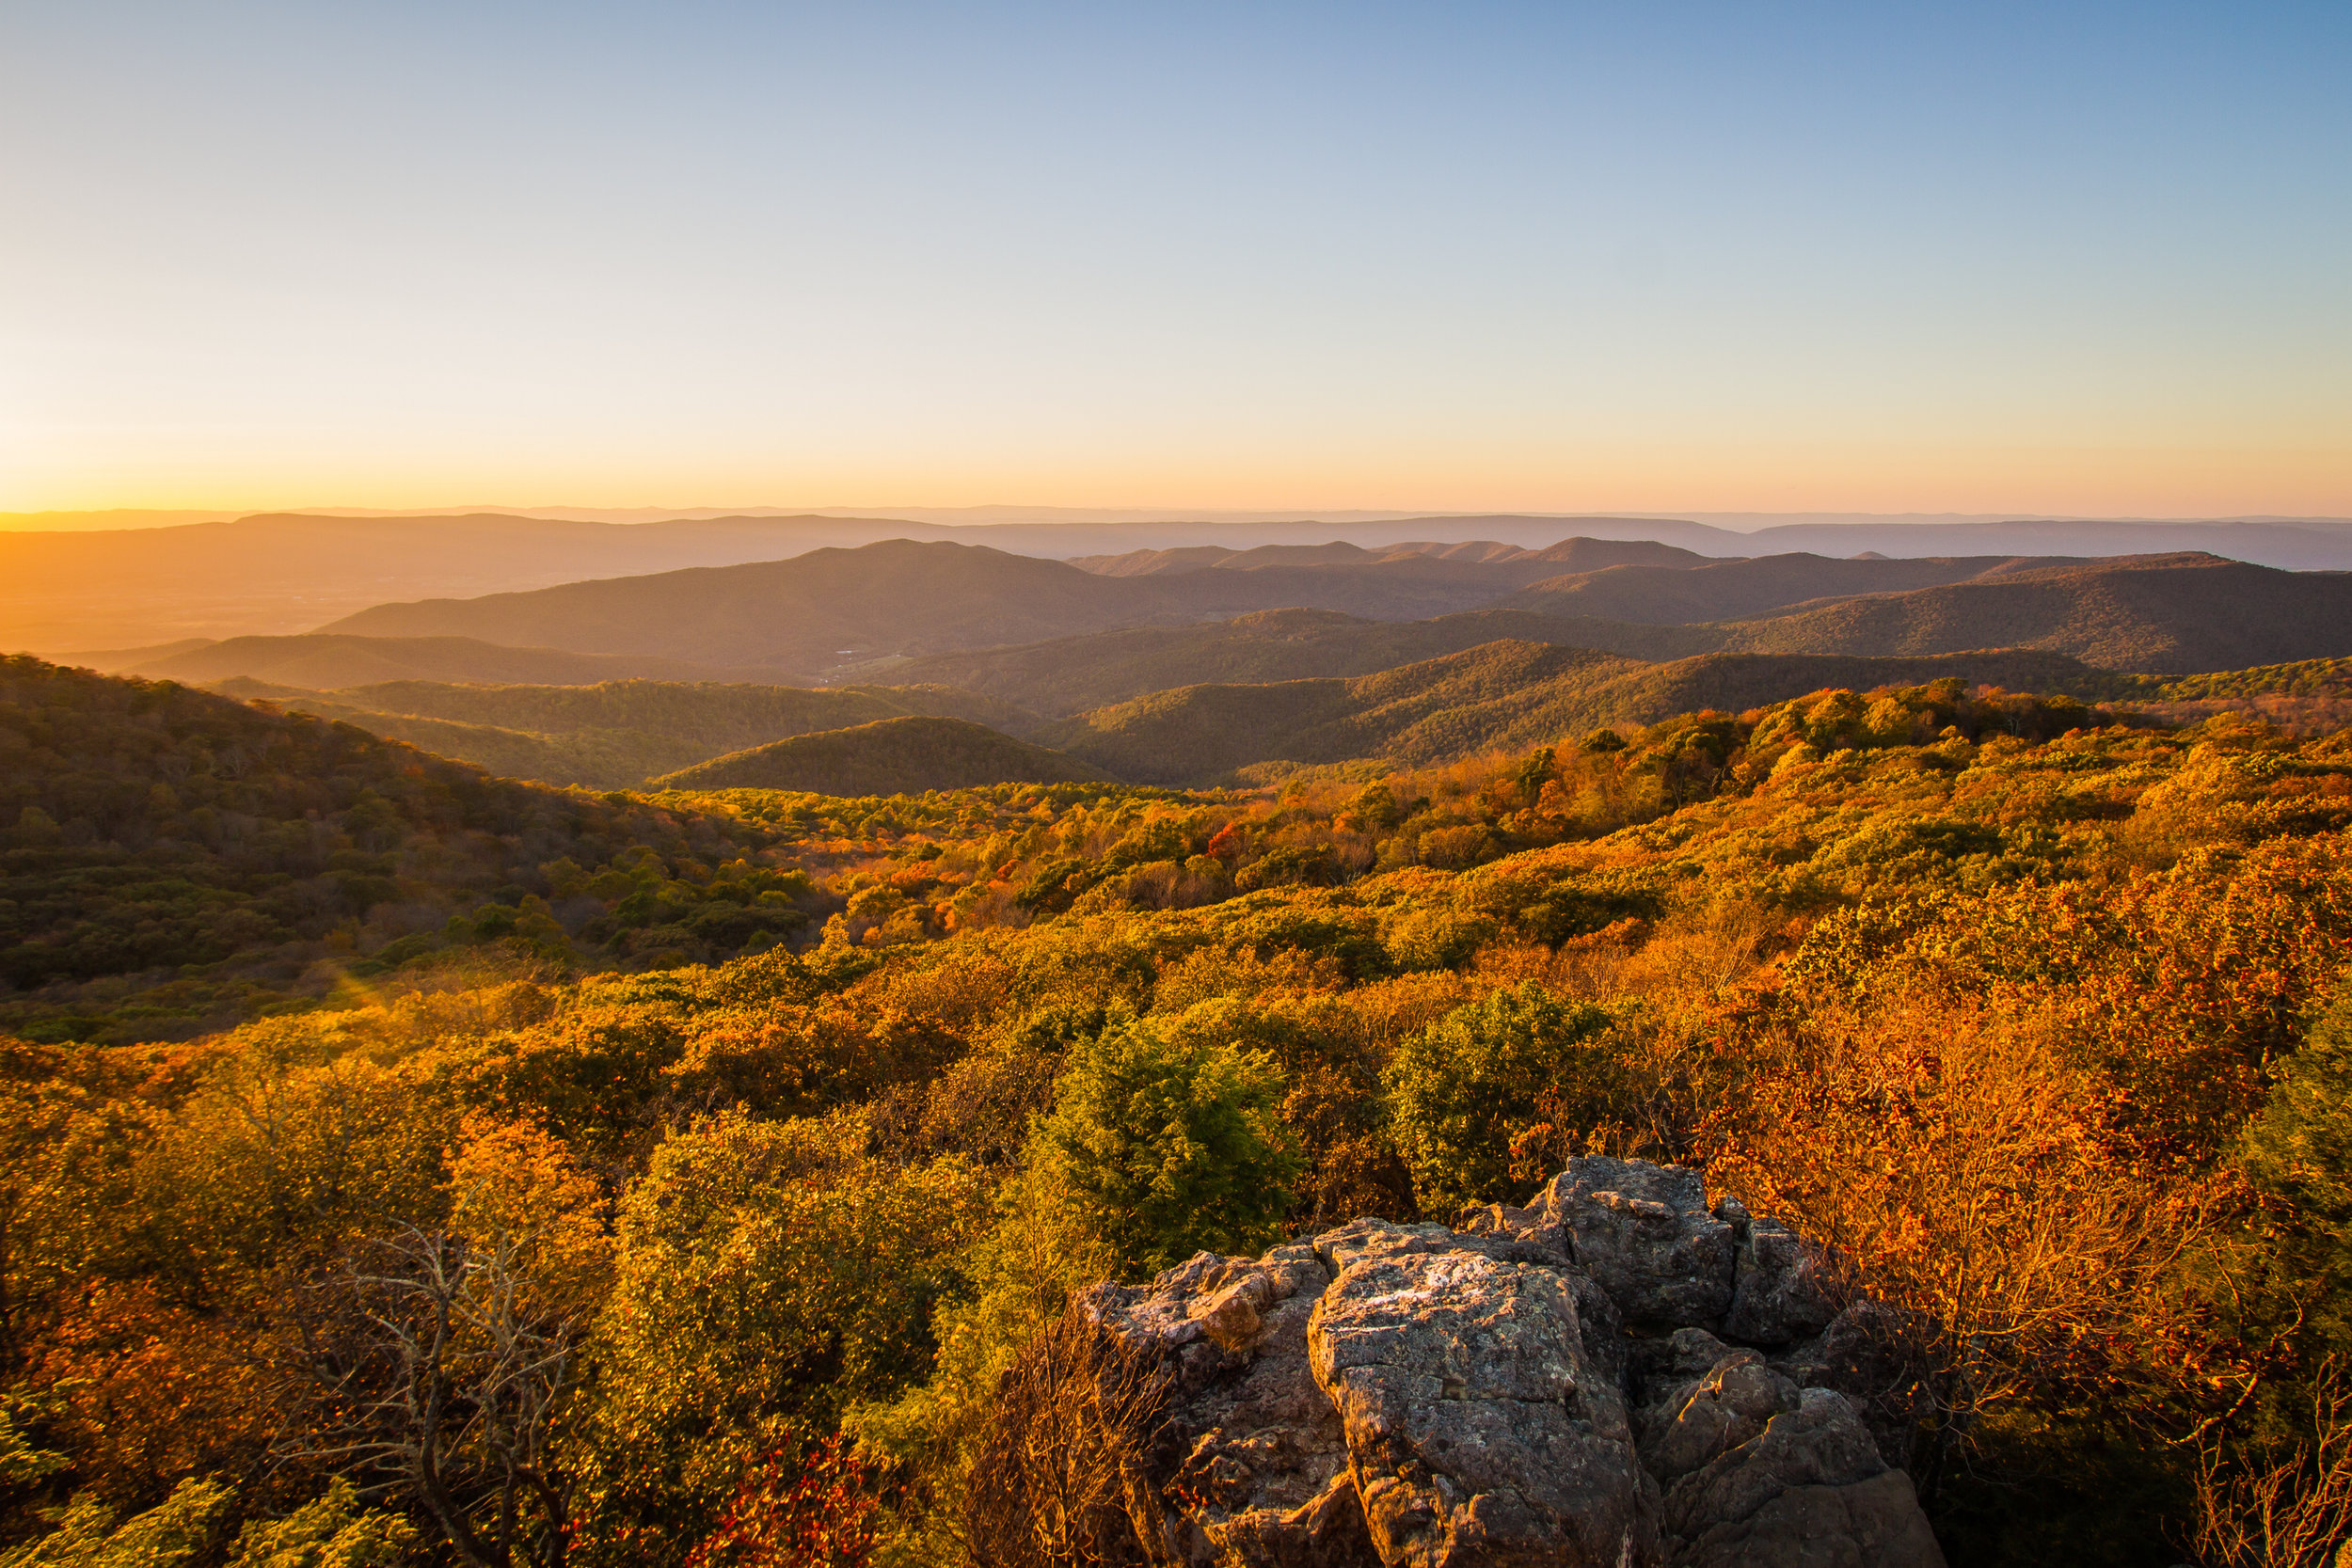 Sunset over the mountains from Bearfence Mountain, Shenandoah National Park